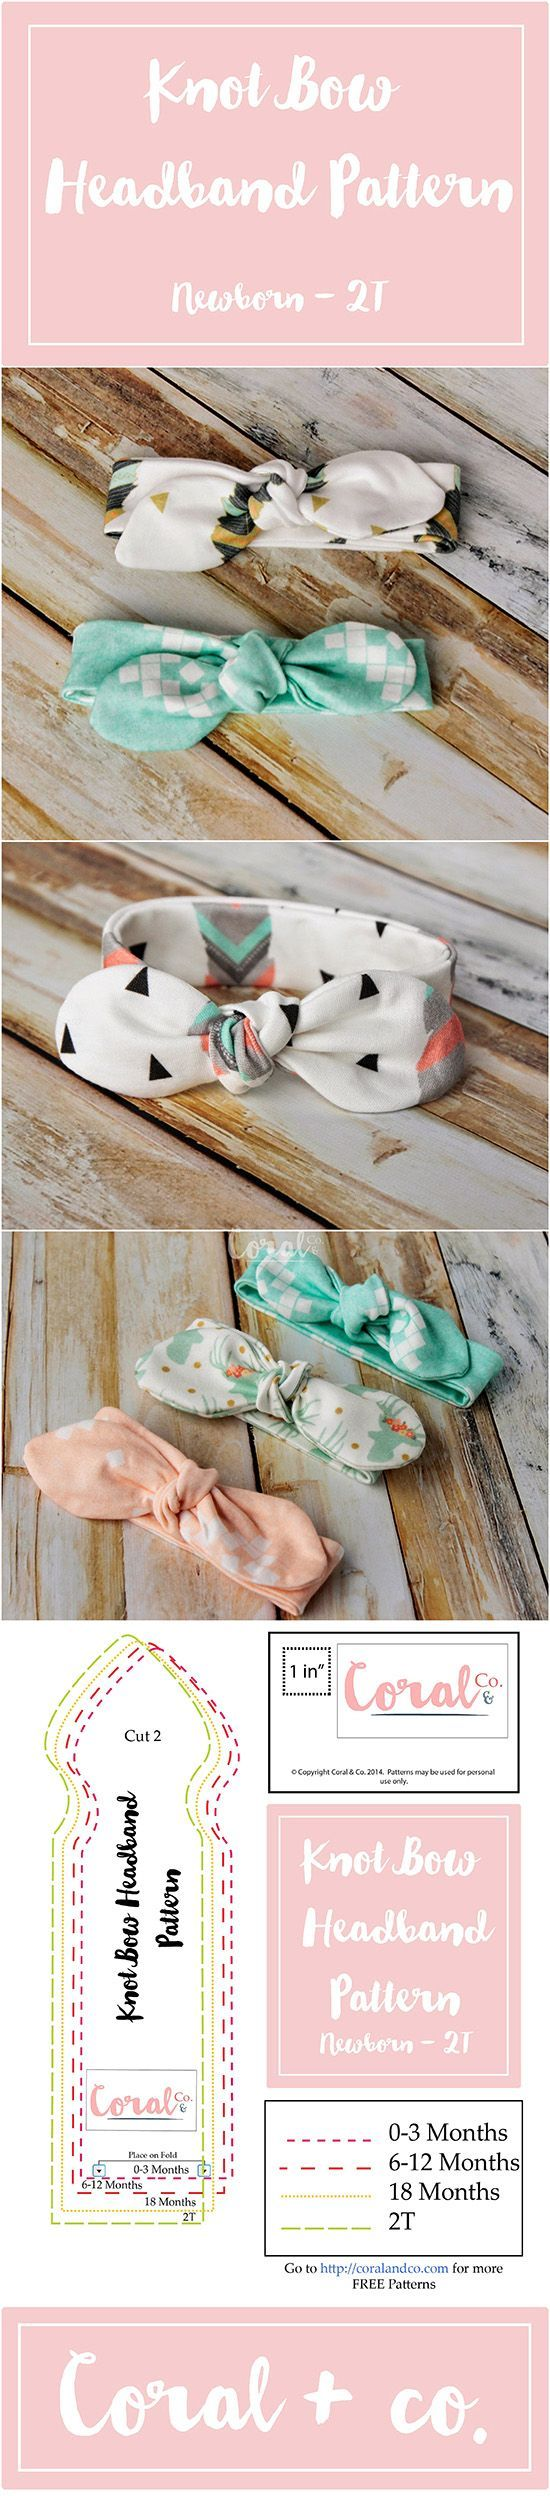 How to Make Knot-Bow Headbands for Babies & Toddlers: An Easy DIY Tutorial with Patterns | BlogHer (scheduled via http://www.tailwindapp.com?utm_source=pinterest&utm_medium=twpin&utm_content=post47026946&utm_campaign=scheduler_attribution)